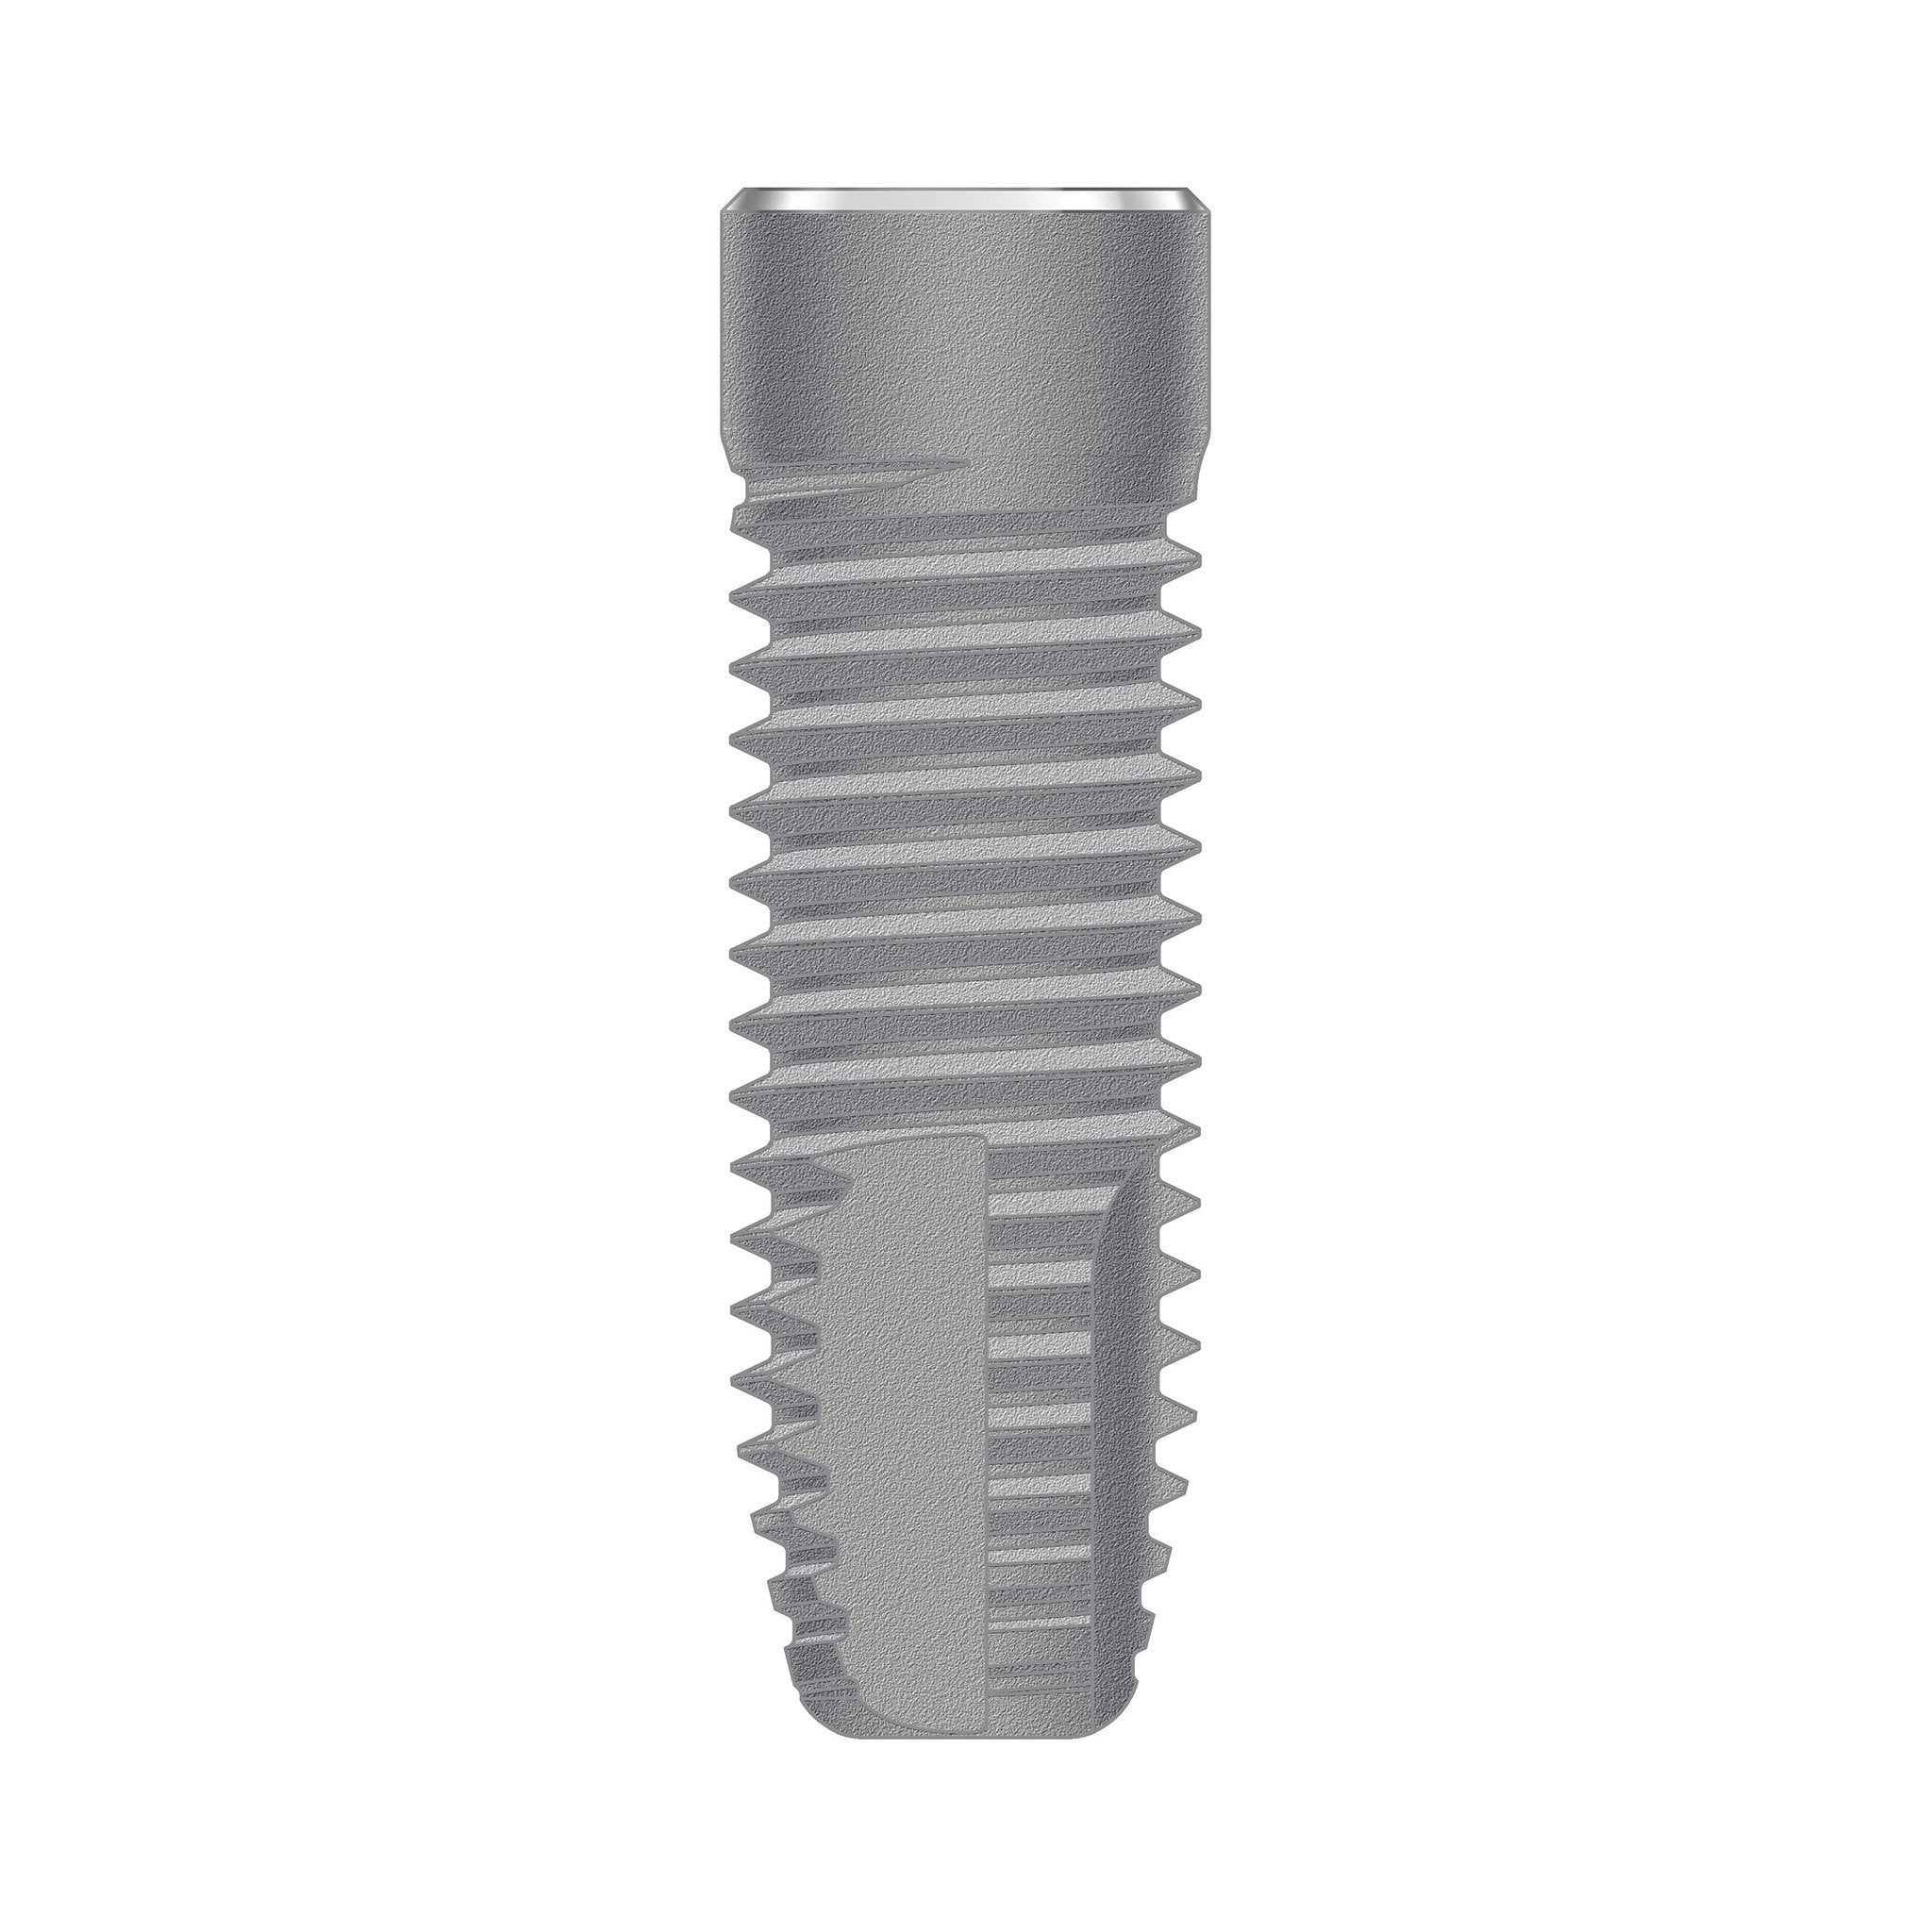 PrimaConnex® Straight Implant RD Ø 5.0 x 8mm | K3